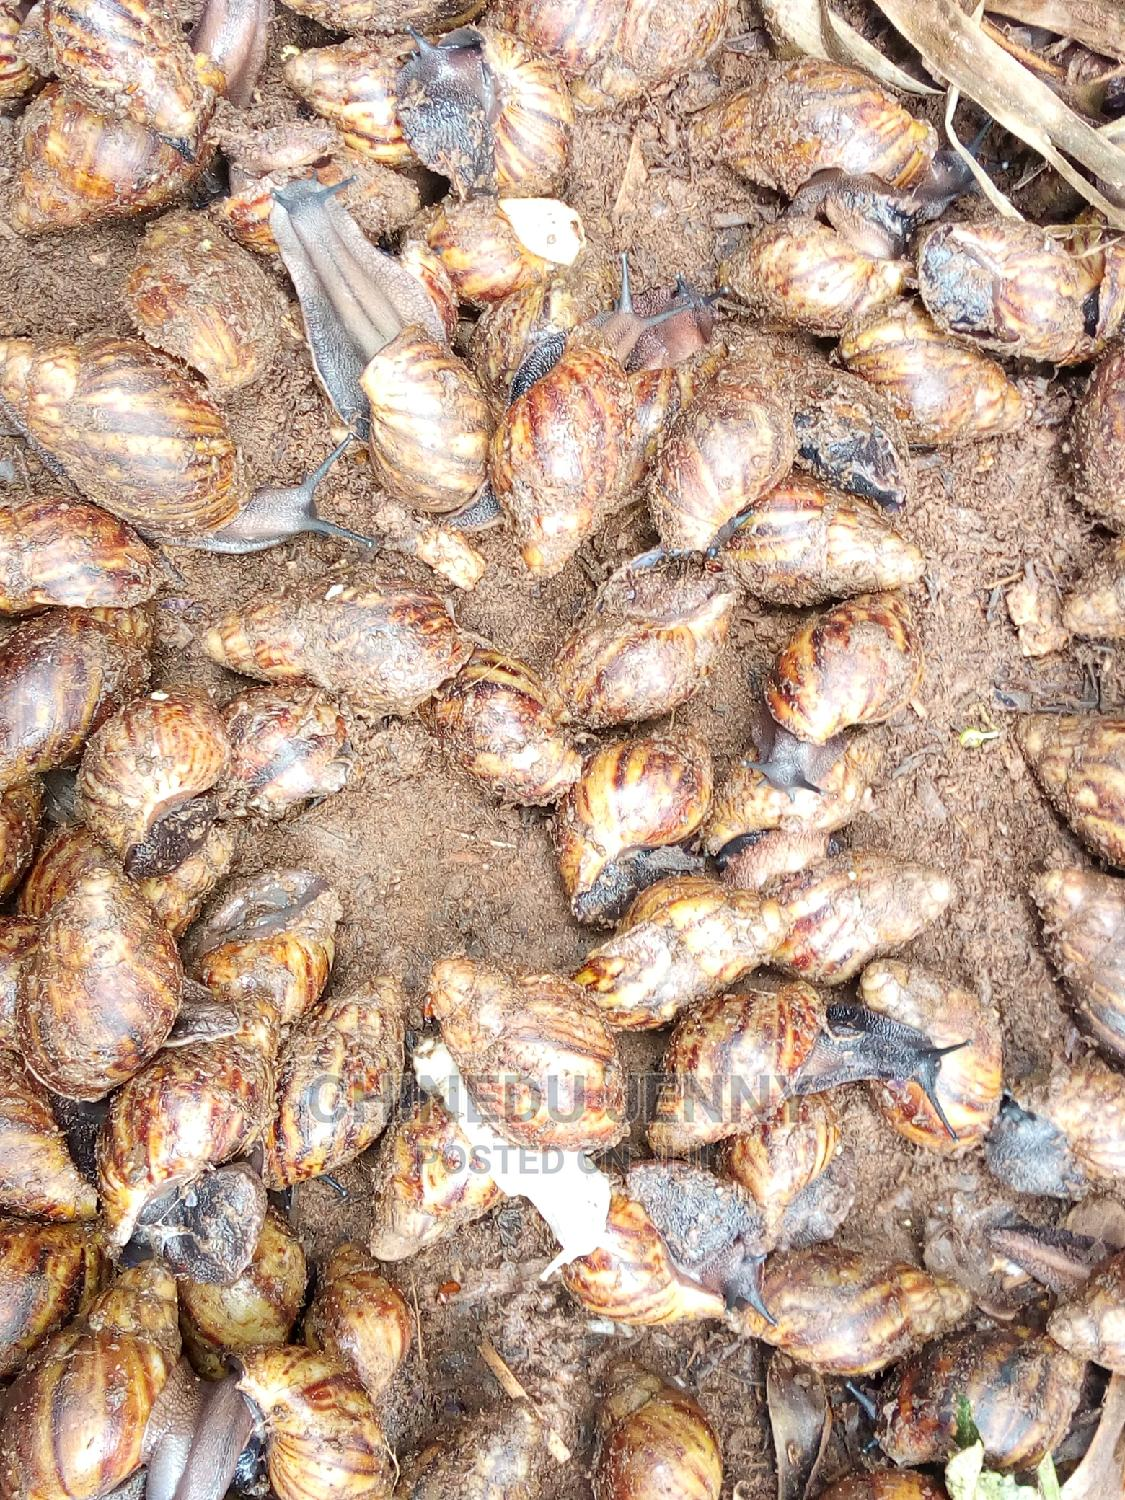 Healthy Grower Snails for Sale | Other Animals for sale in Ado-Odo/Ota, Ogun State, Nigeria